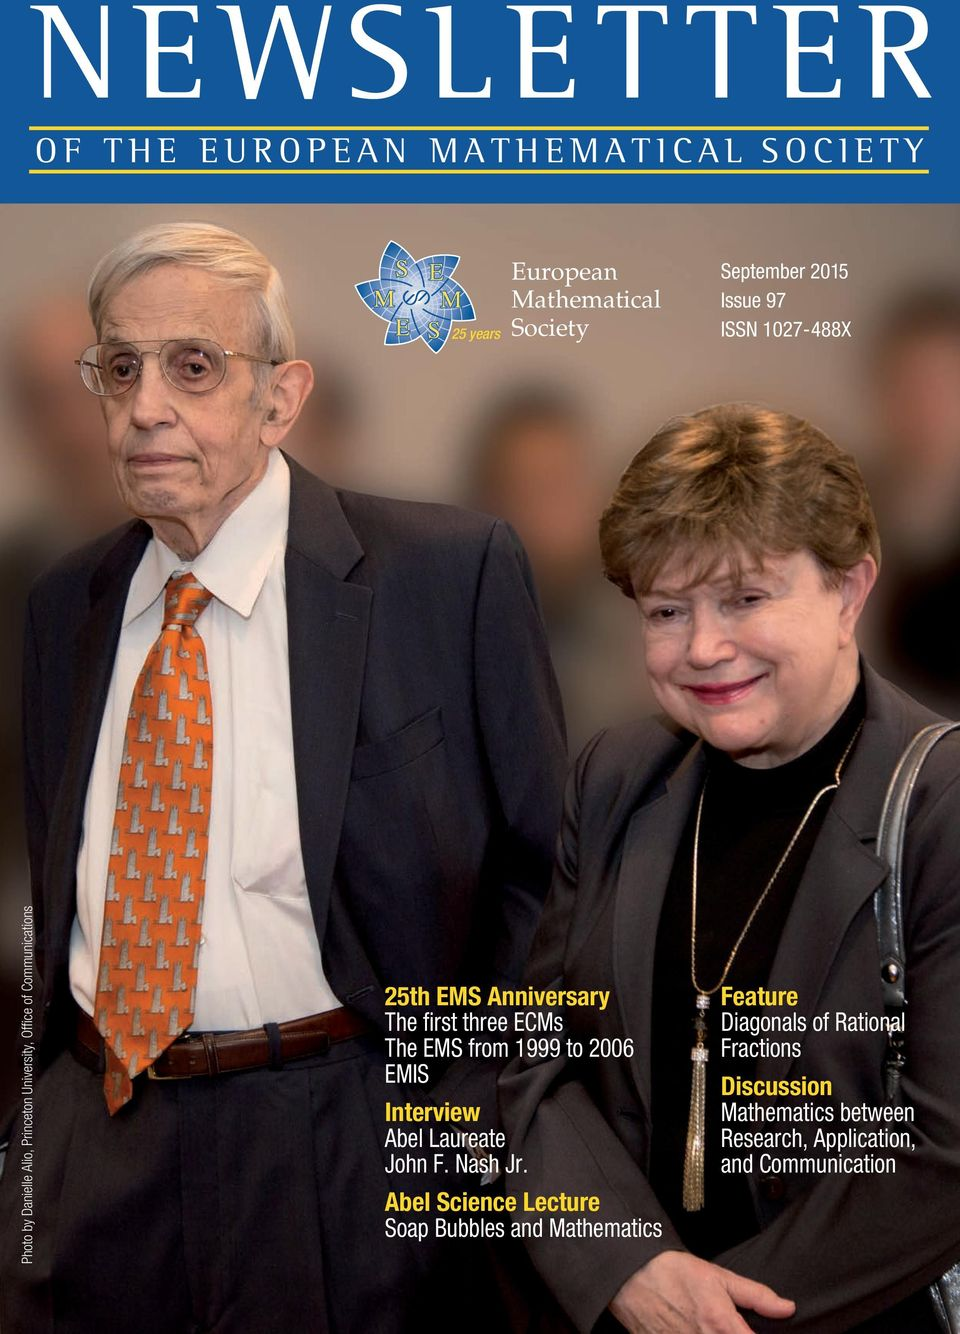 three ECMs The EMS from 1999 to 2006 EMIS Interview Abel Laureate John F. Nash Jr.